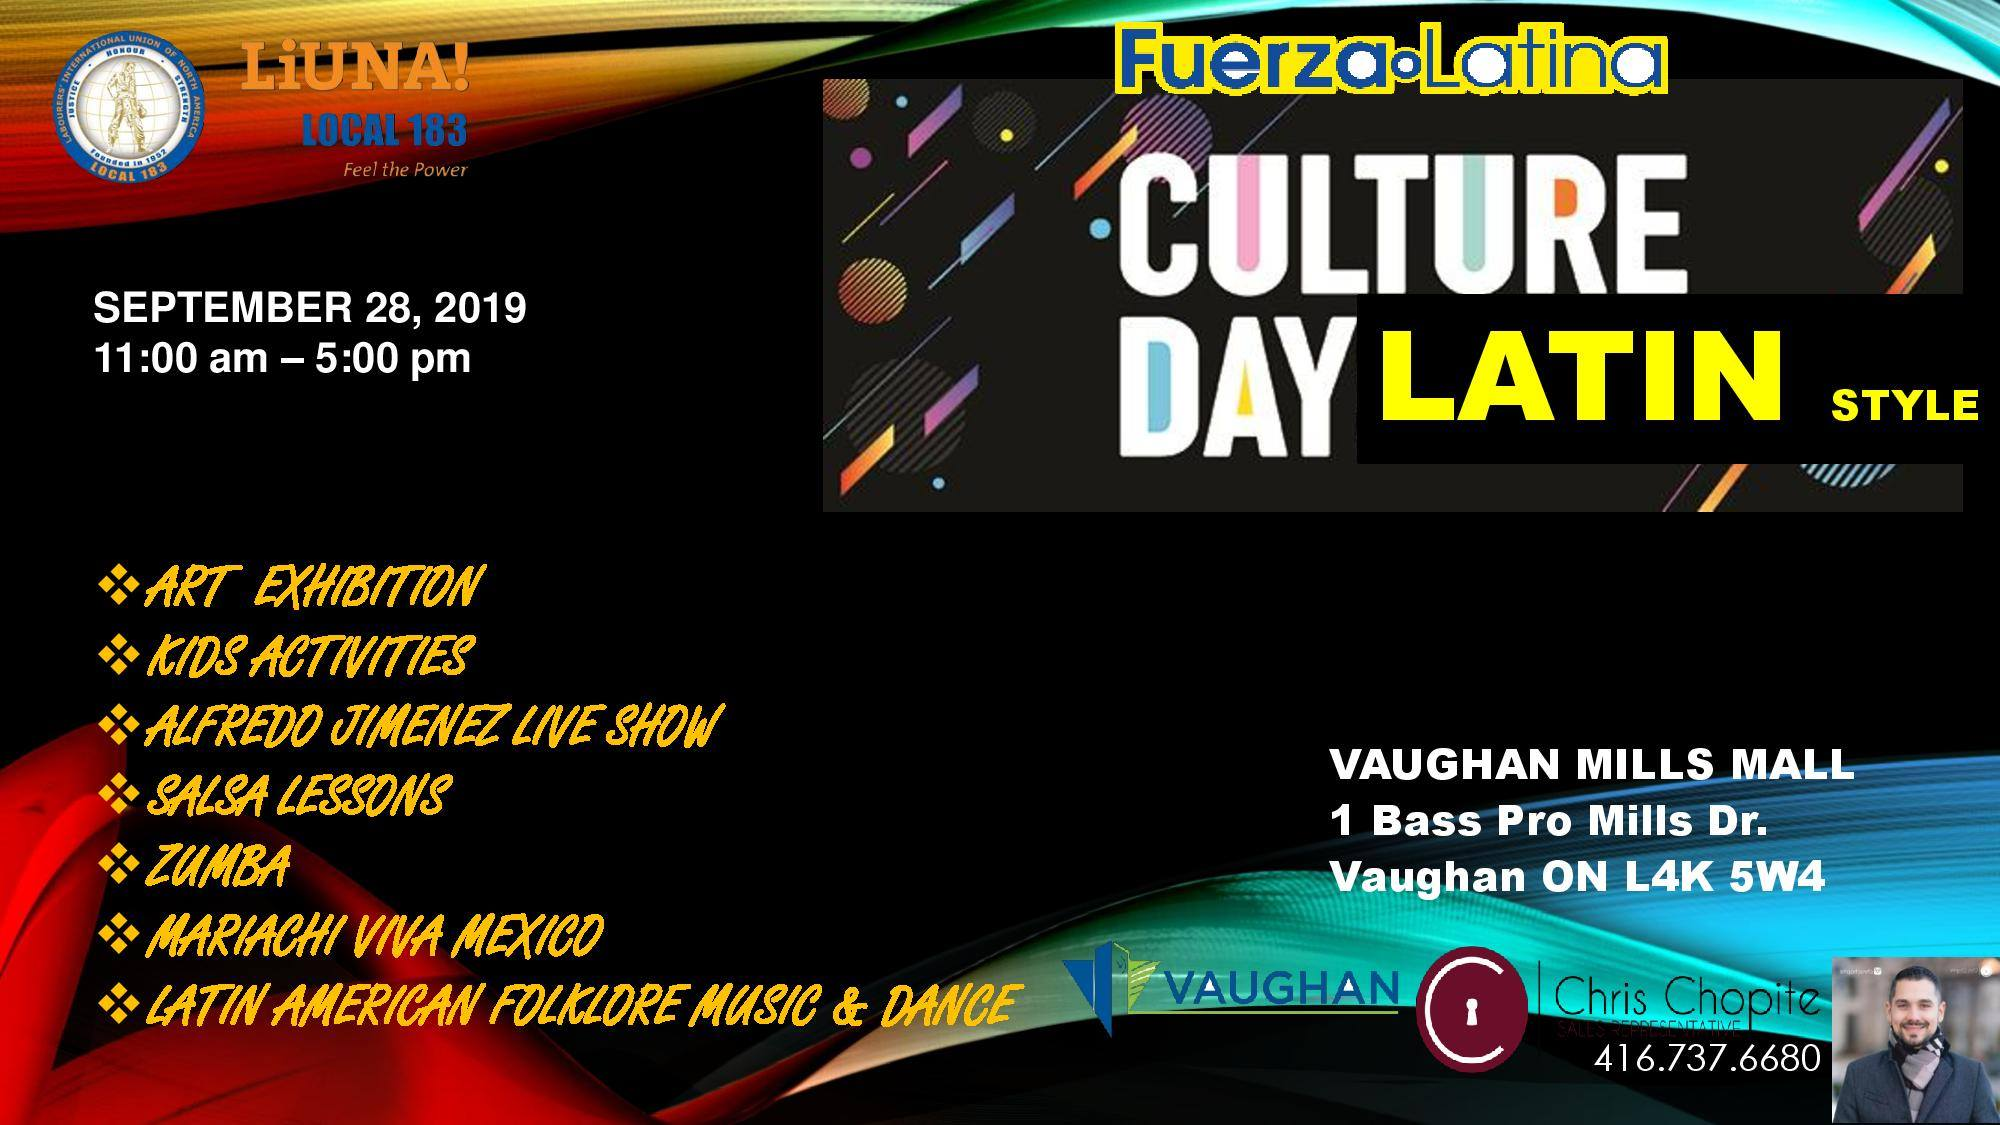 Culture Days Latin Style